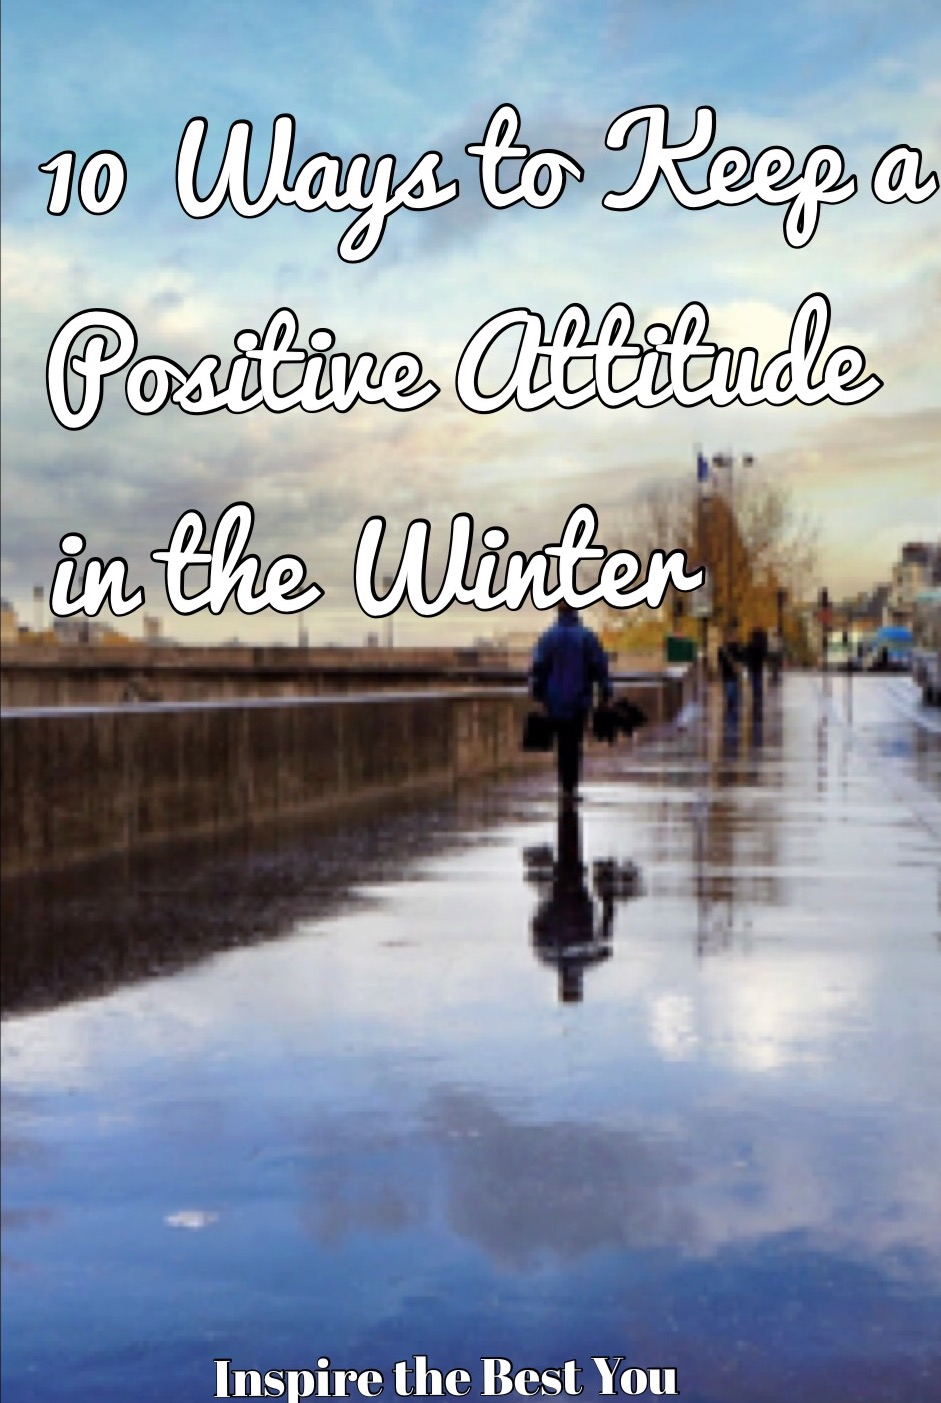 10 Ways to Keep a Positive Attitude in the Winter